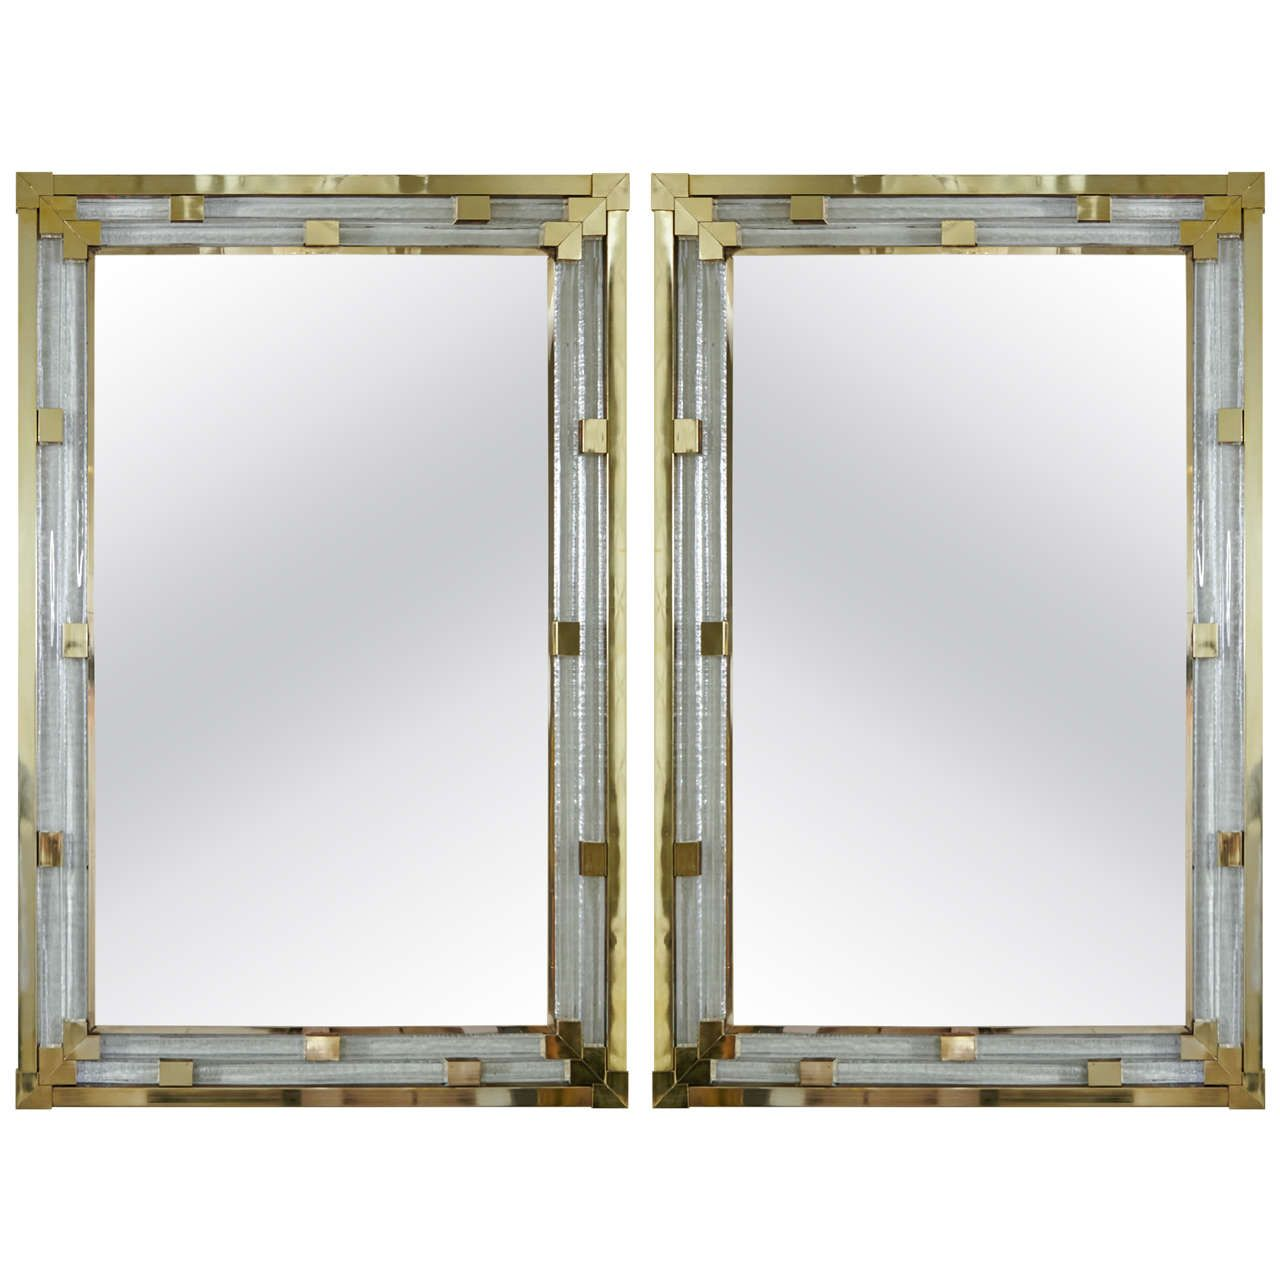 Pair Of Italian Art Deco Style Mirrors In Molded Gl And Polished Br